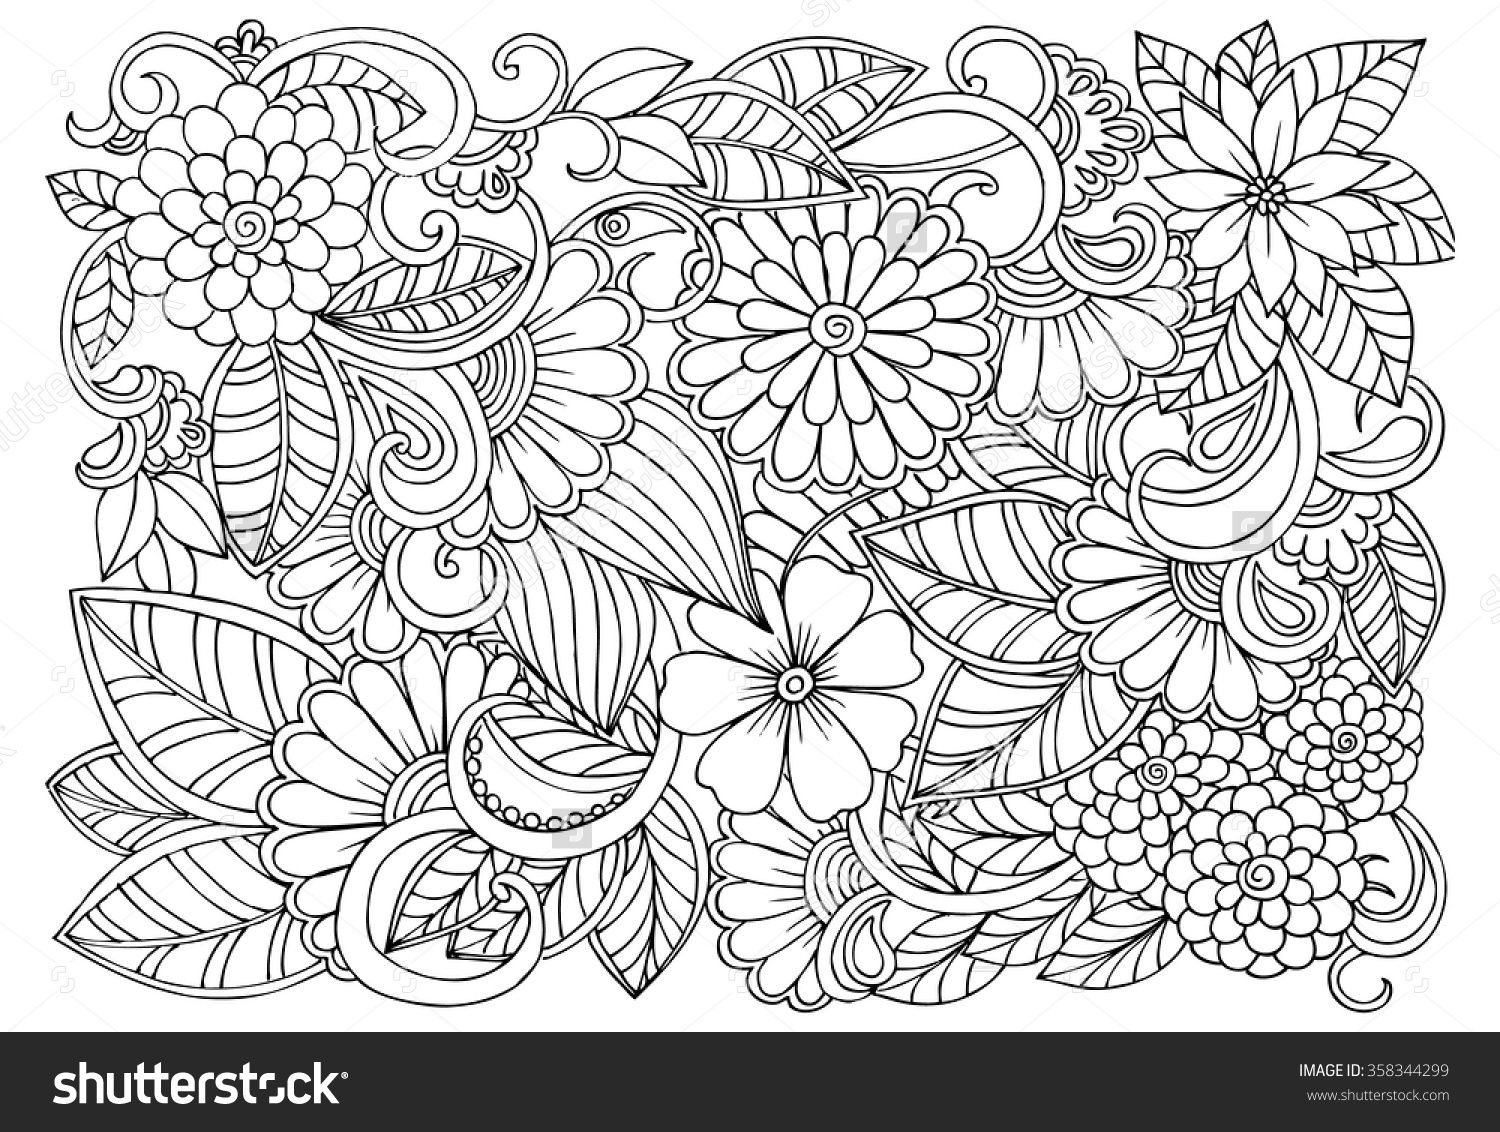 Coloring Pages Of Flower Designs With Flower Designs ...